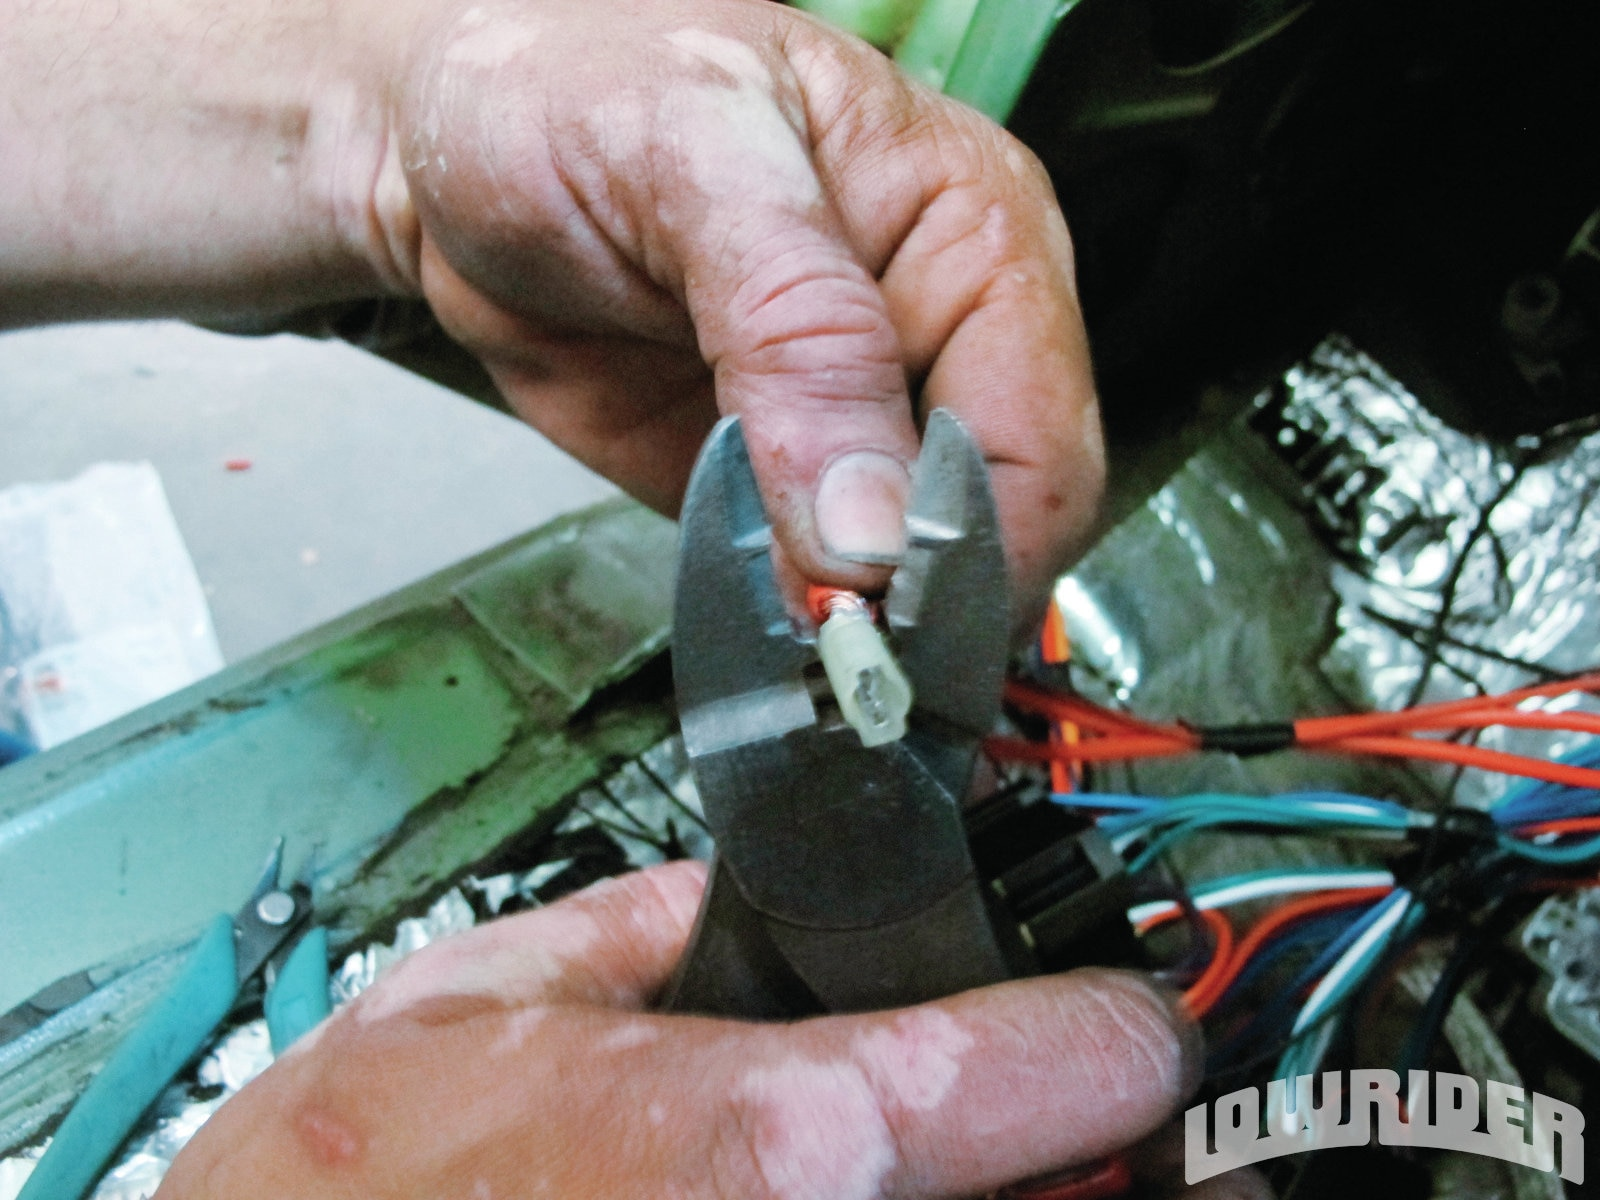 <strong>19</strong>. The power lead was wired and ready to plug into the fuse box.